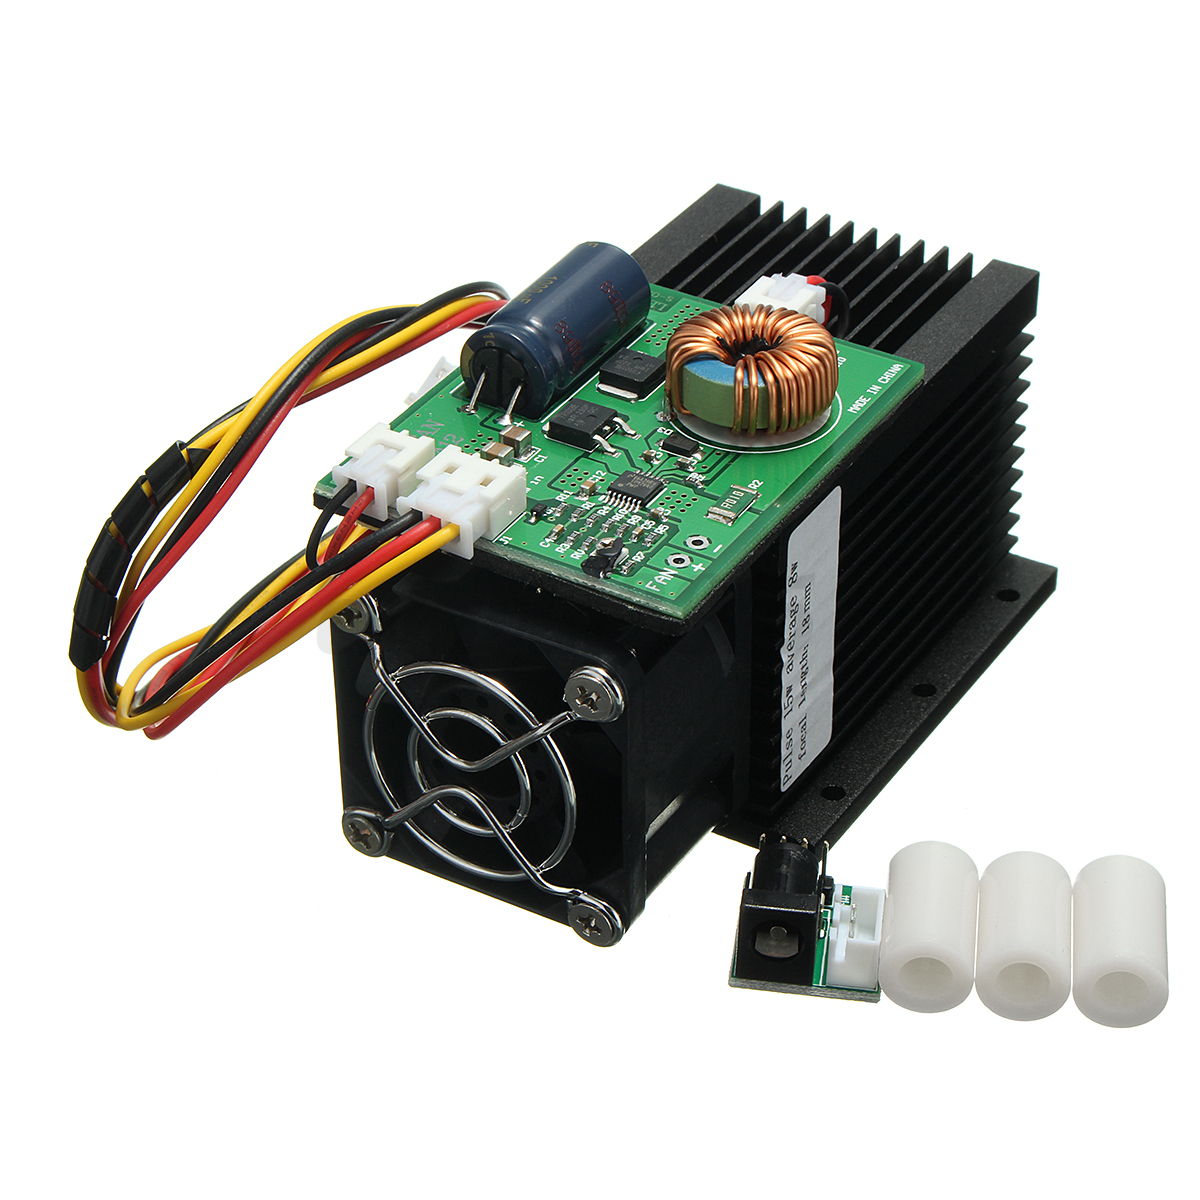 Focusable High Power 15w Blue Laser Head Diode Engraving